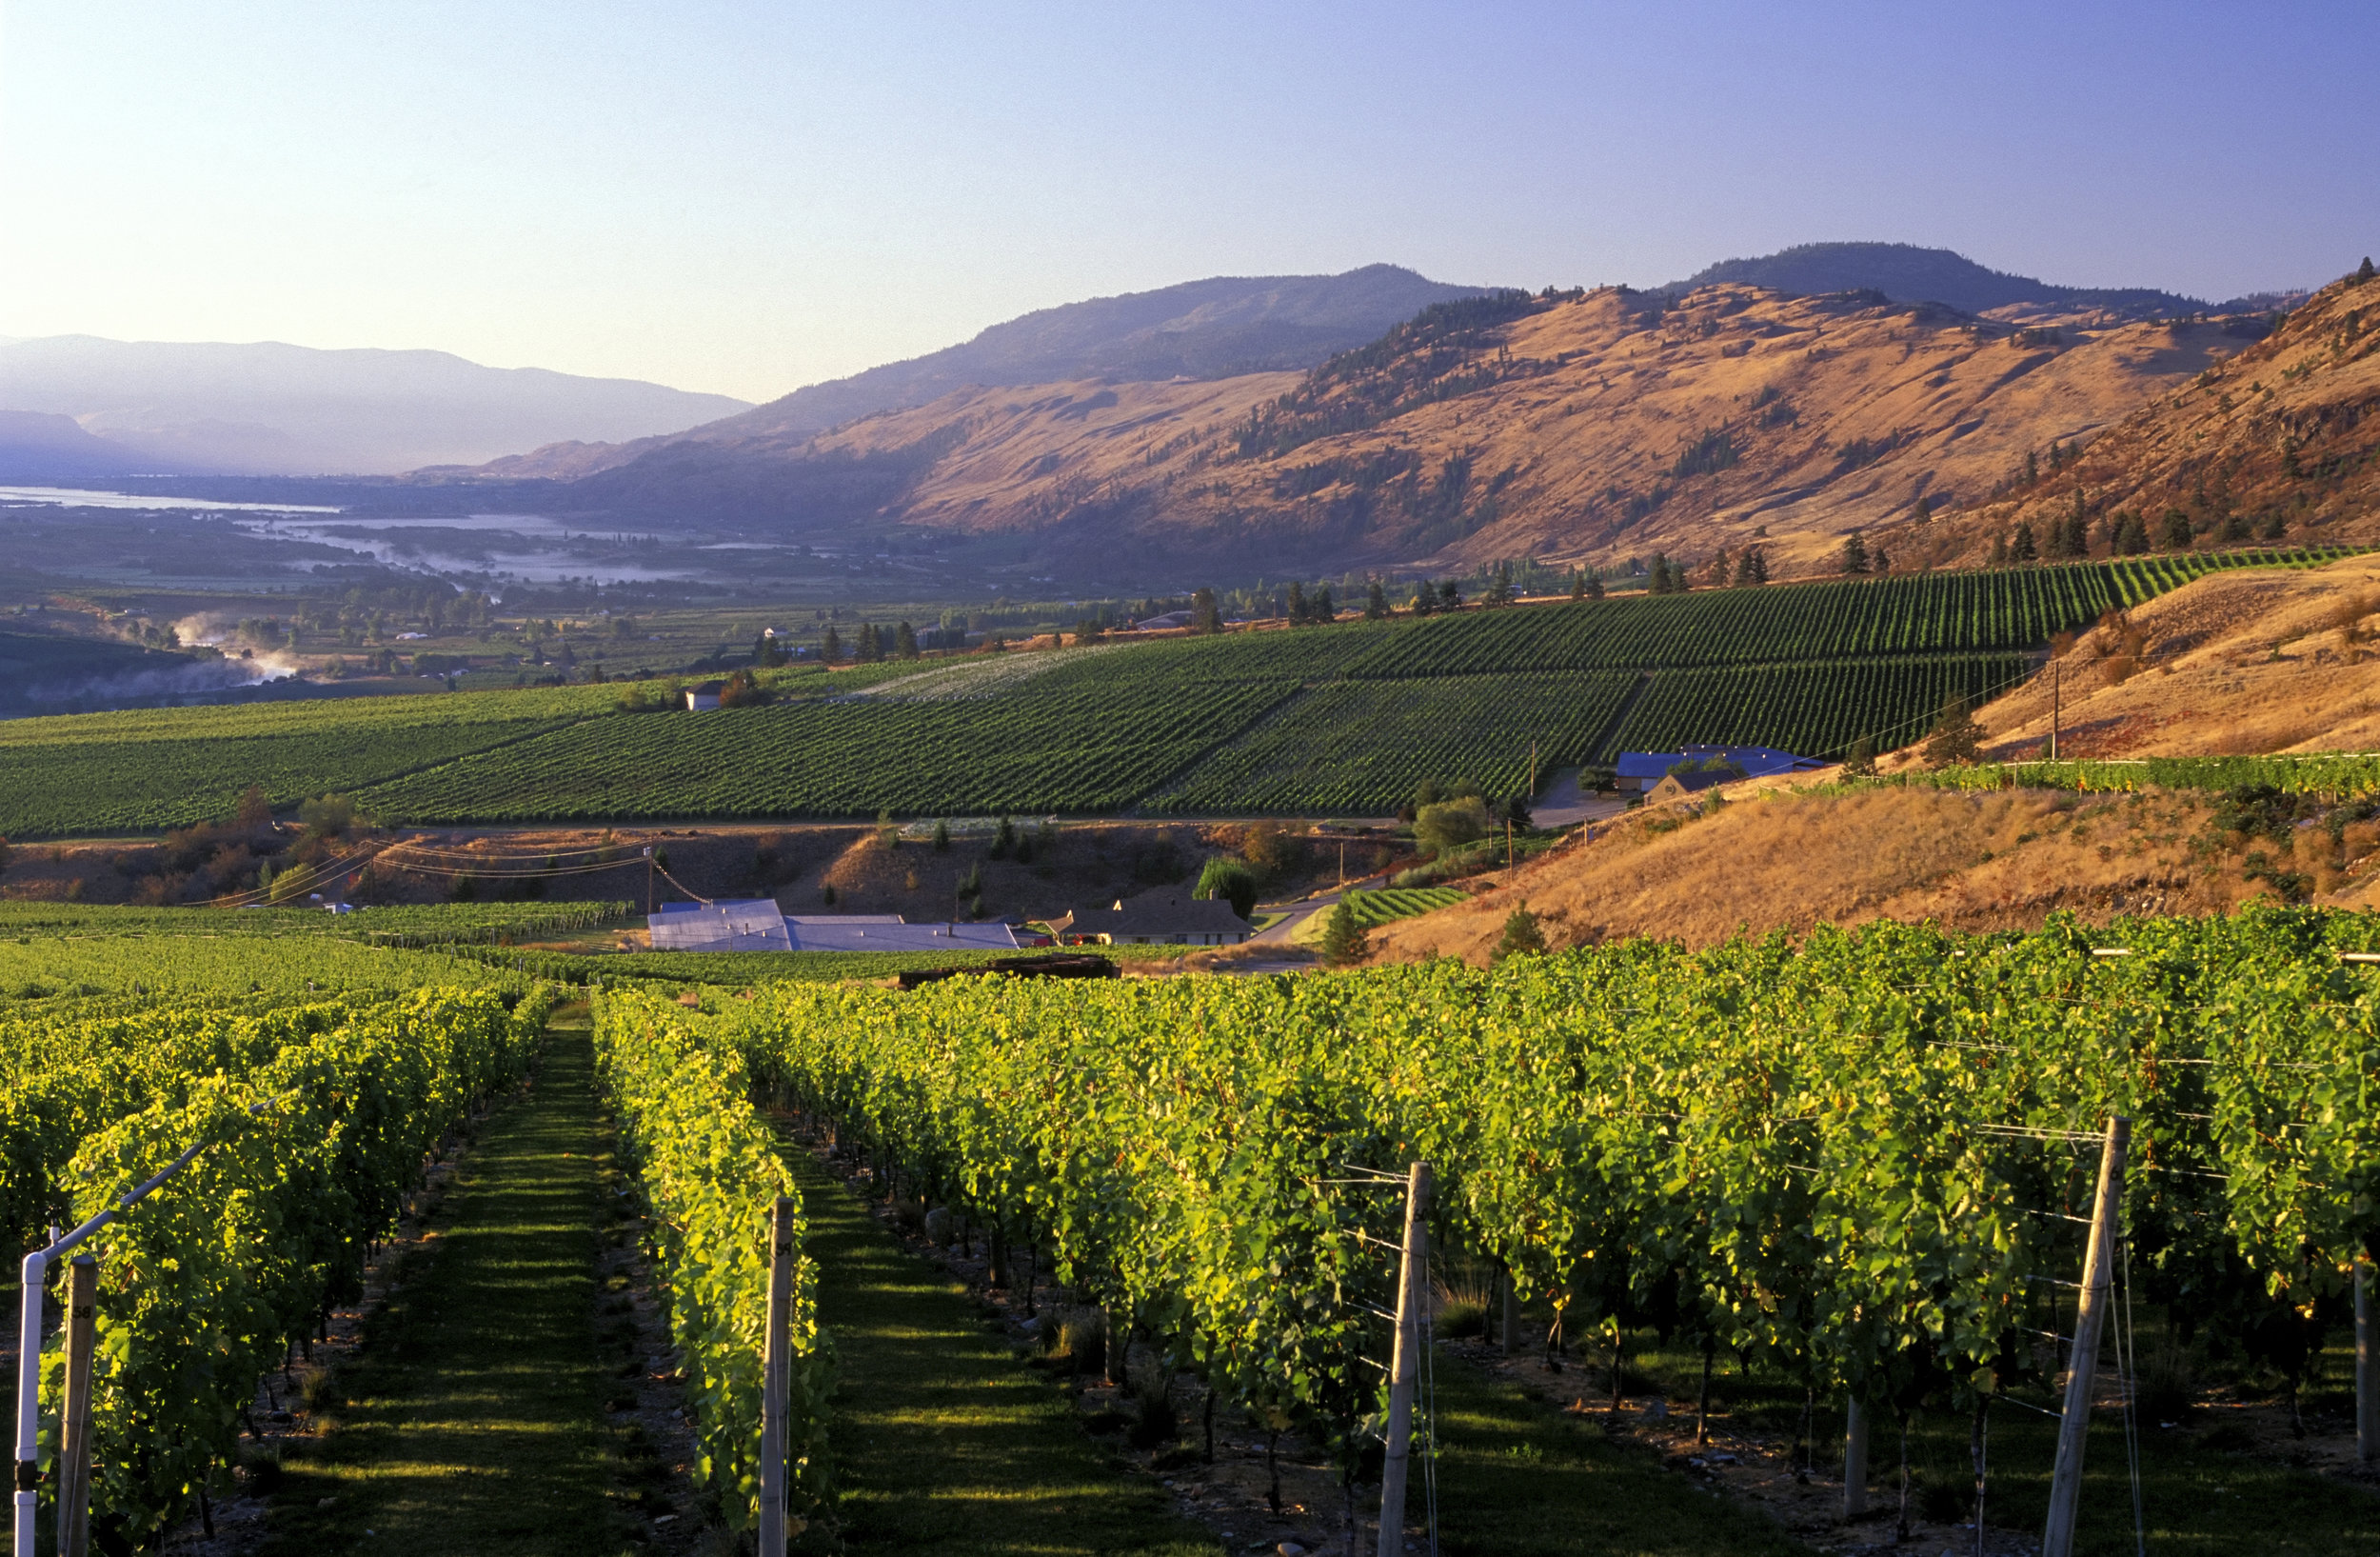 The South Okanagan's Golden Mile